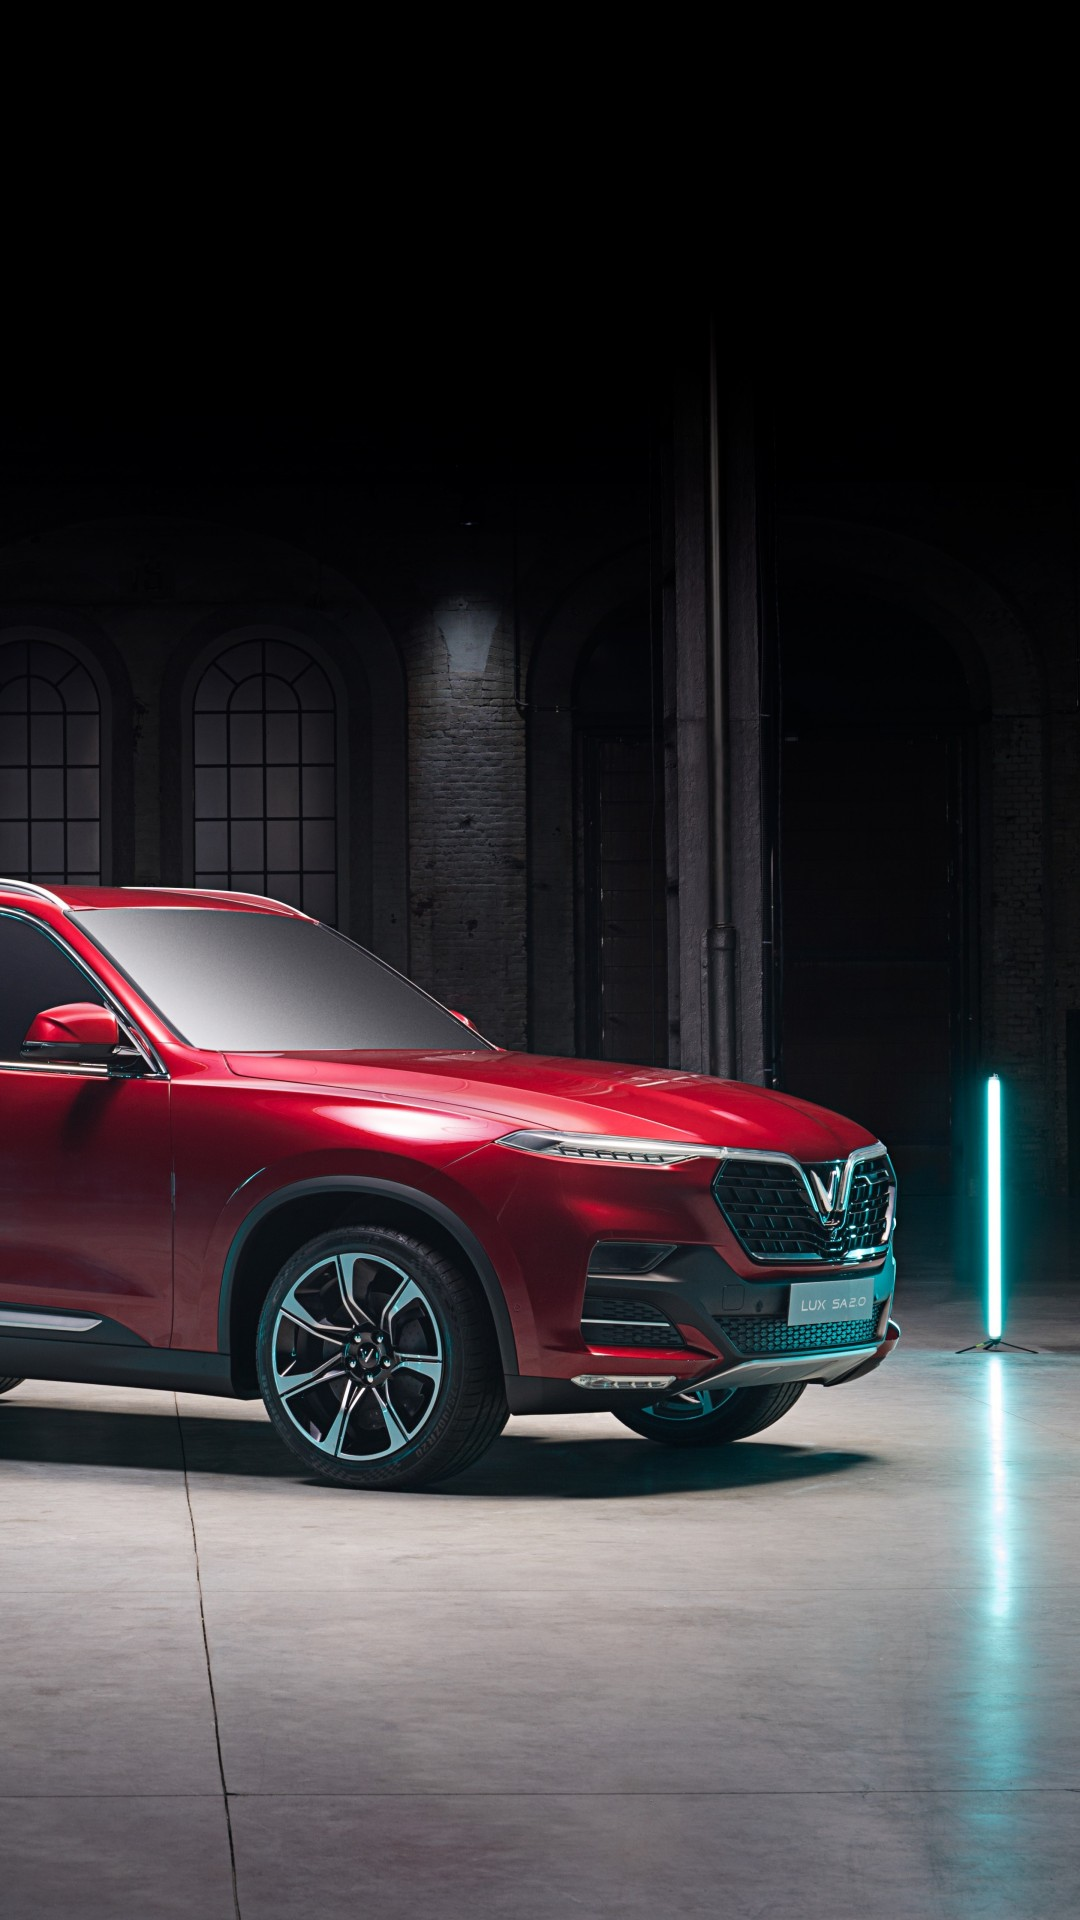 What Is A Crossover Suv >> Wallpaper VinFast LUX A2.0, SUV, 2019 Cars, 5K, Cars & Bikes #20544